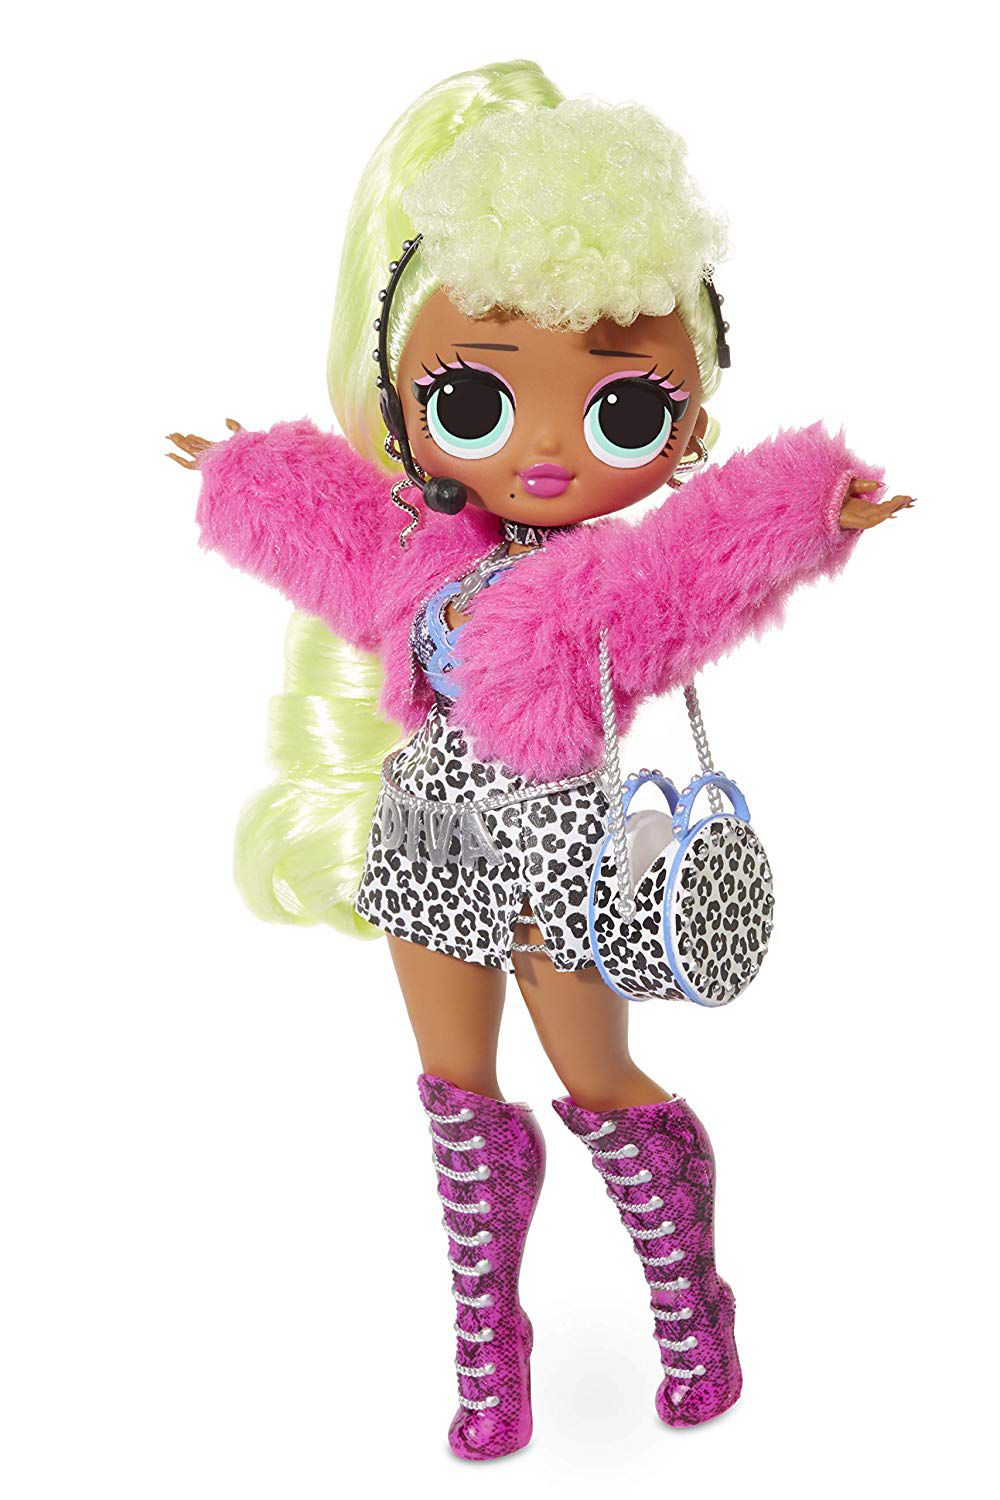 PRÉ VENDA: Boneca Lady Diva (Fashion Doll): LOL Surprise! O.M.G. (20 Surpresas)